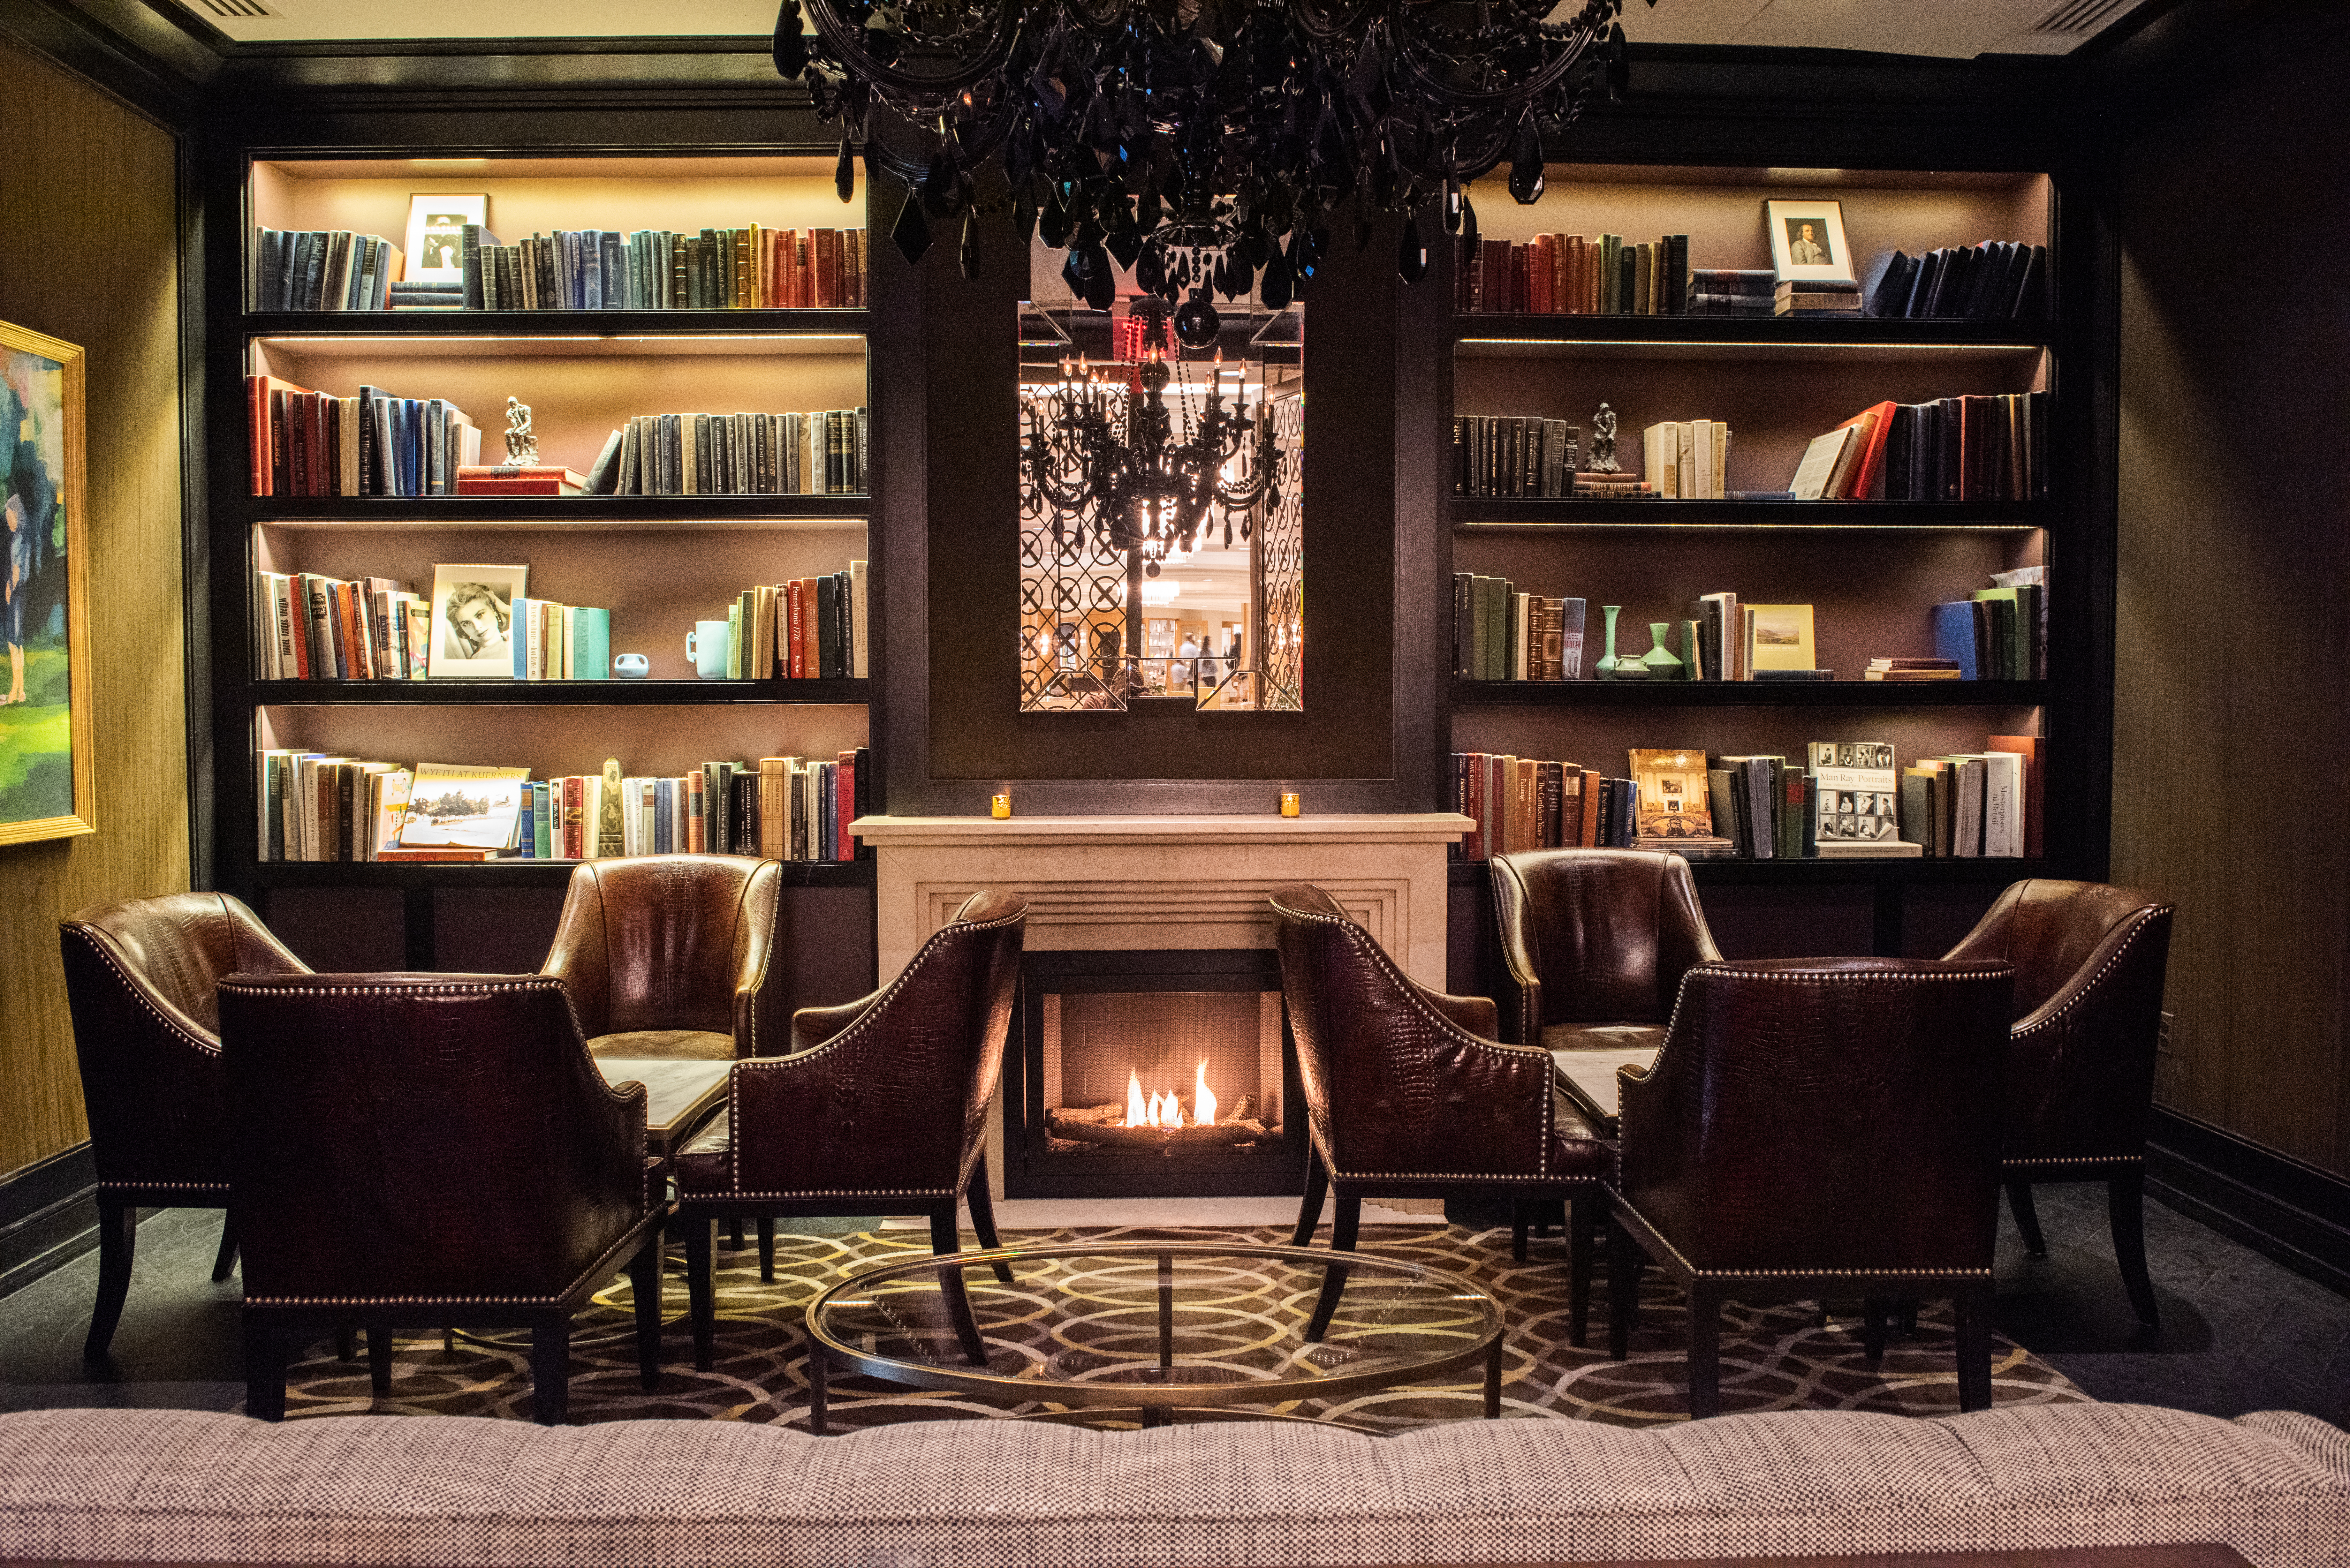 17 Philly Restaurants and Bars With Cozy Fireplaces